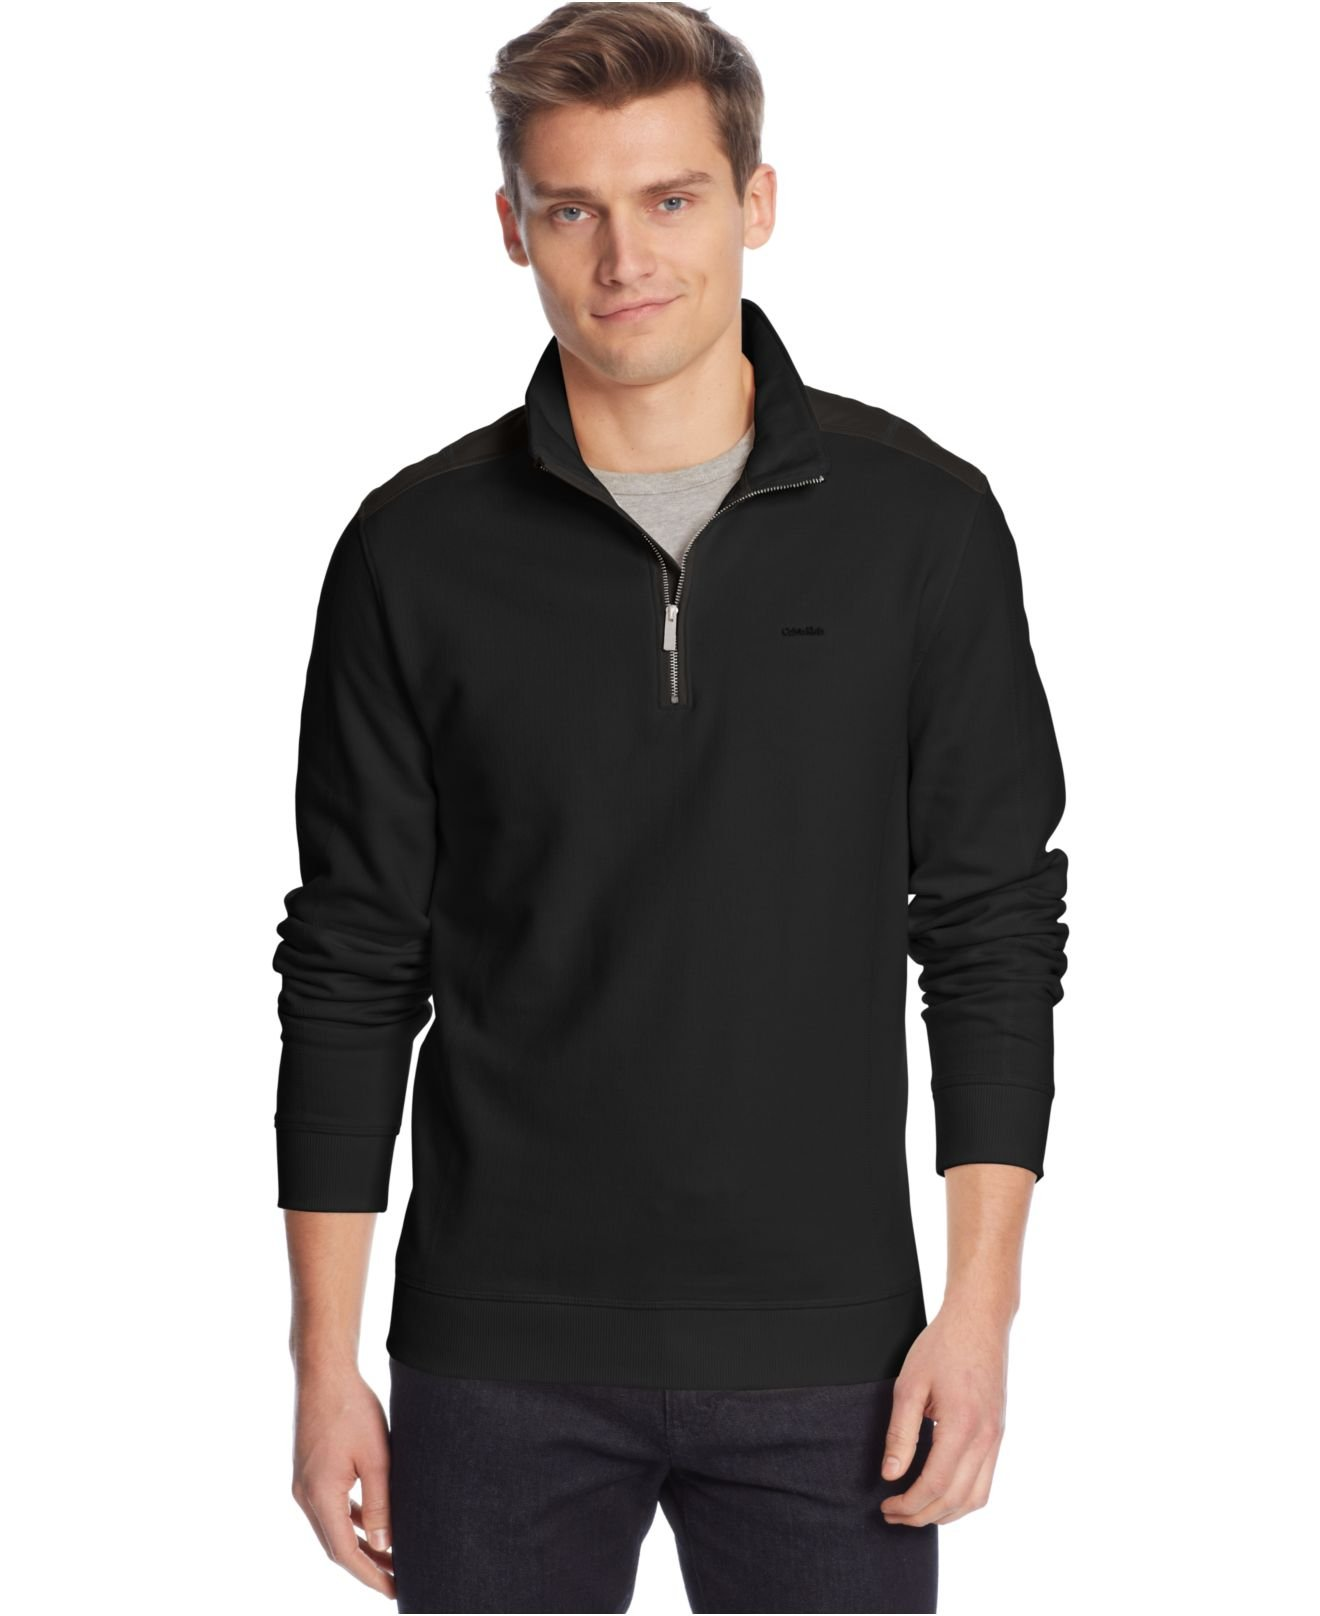 calvin klein quarter zip solid pique fleece sweater in black for men lyst. Black Bedroom Furniture Sets. Home Design Ideas